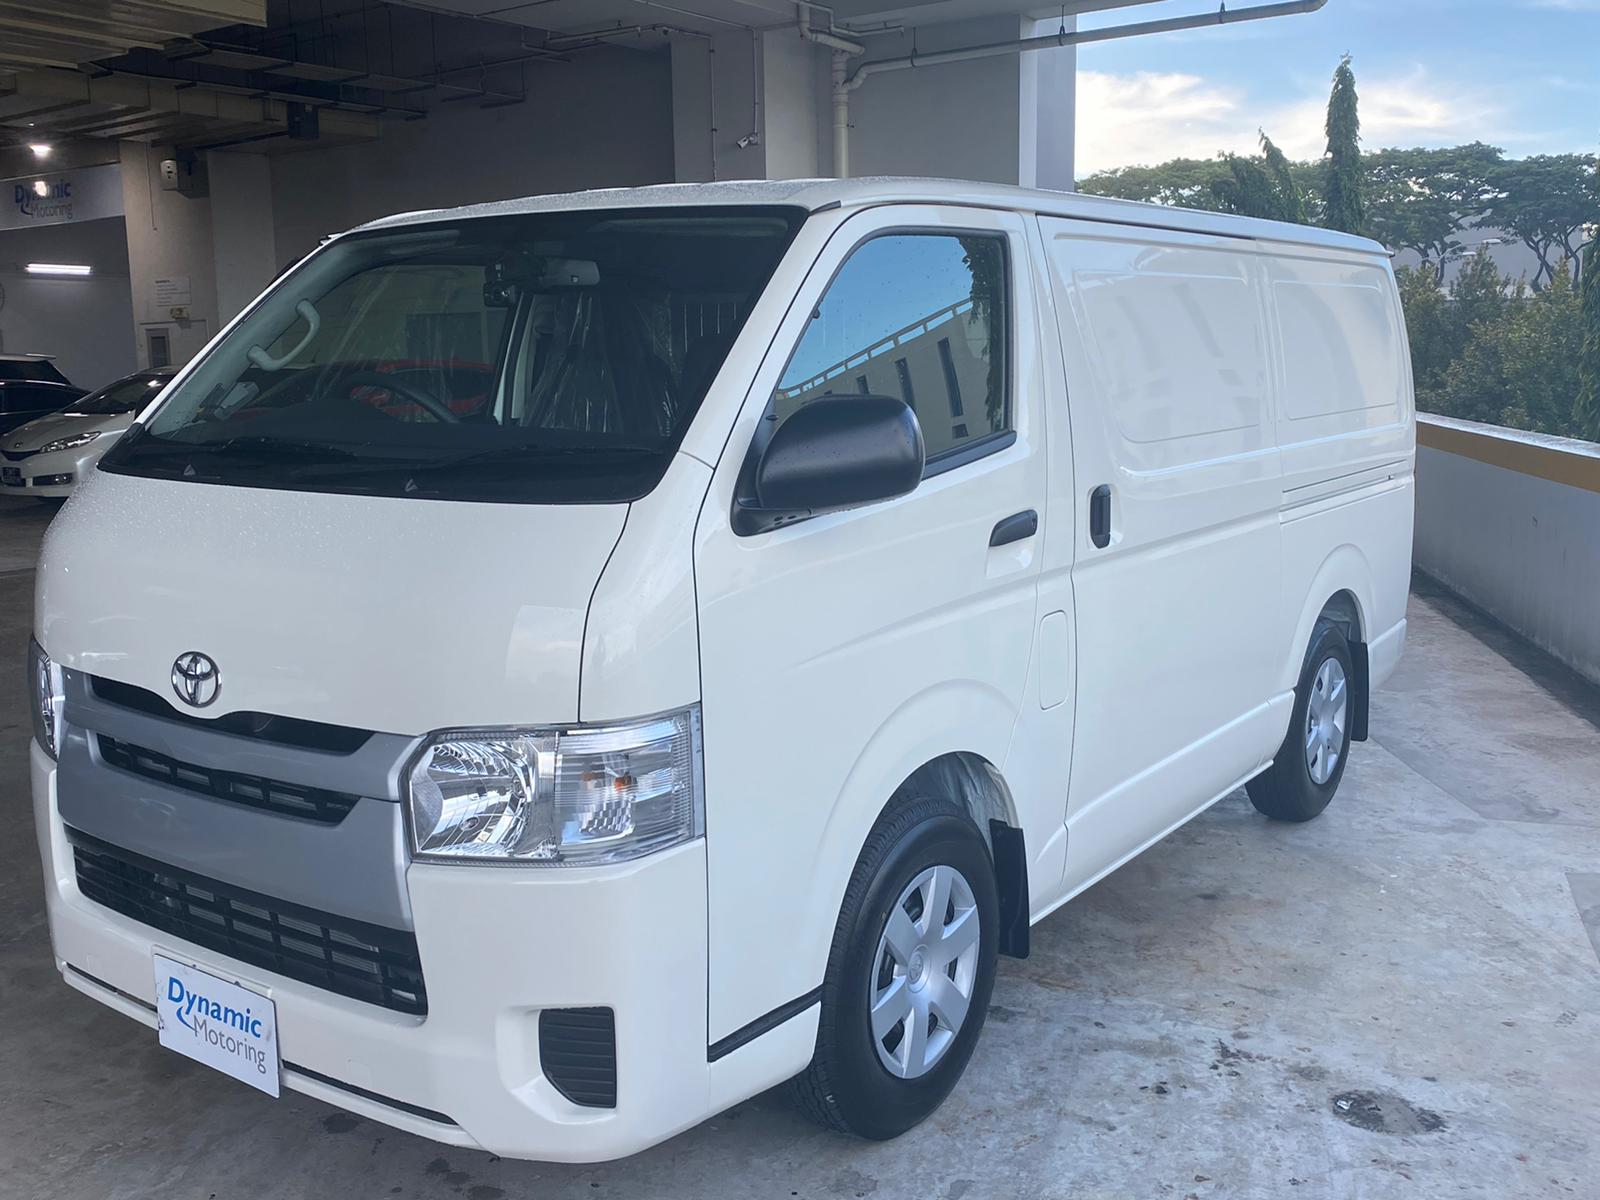 Toyota Hiace Brand New (For Lease)